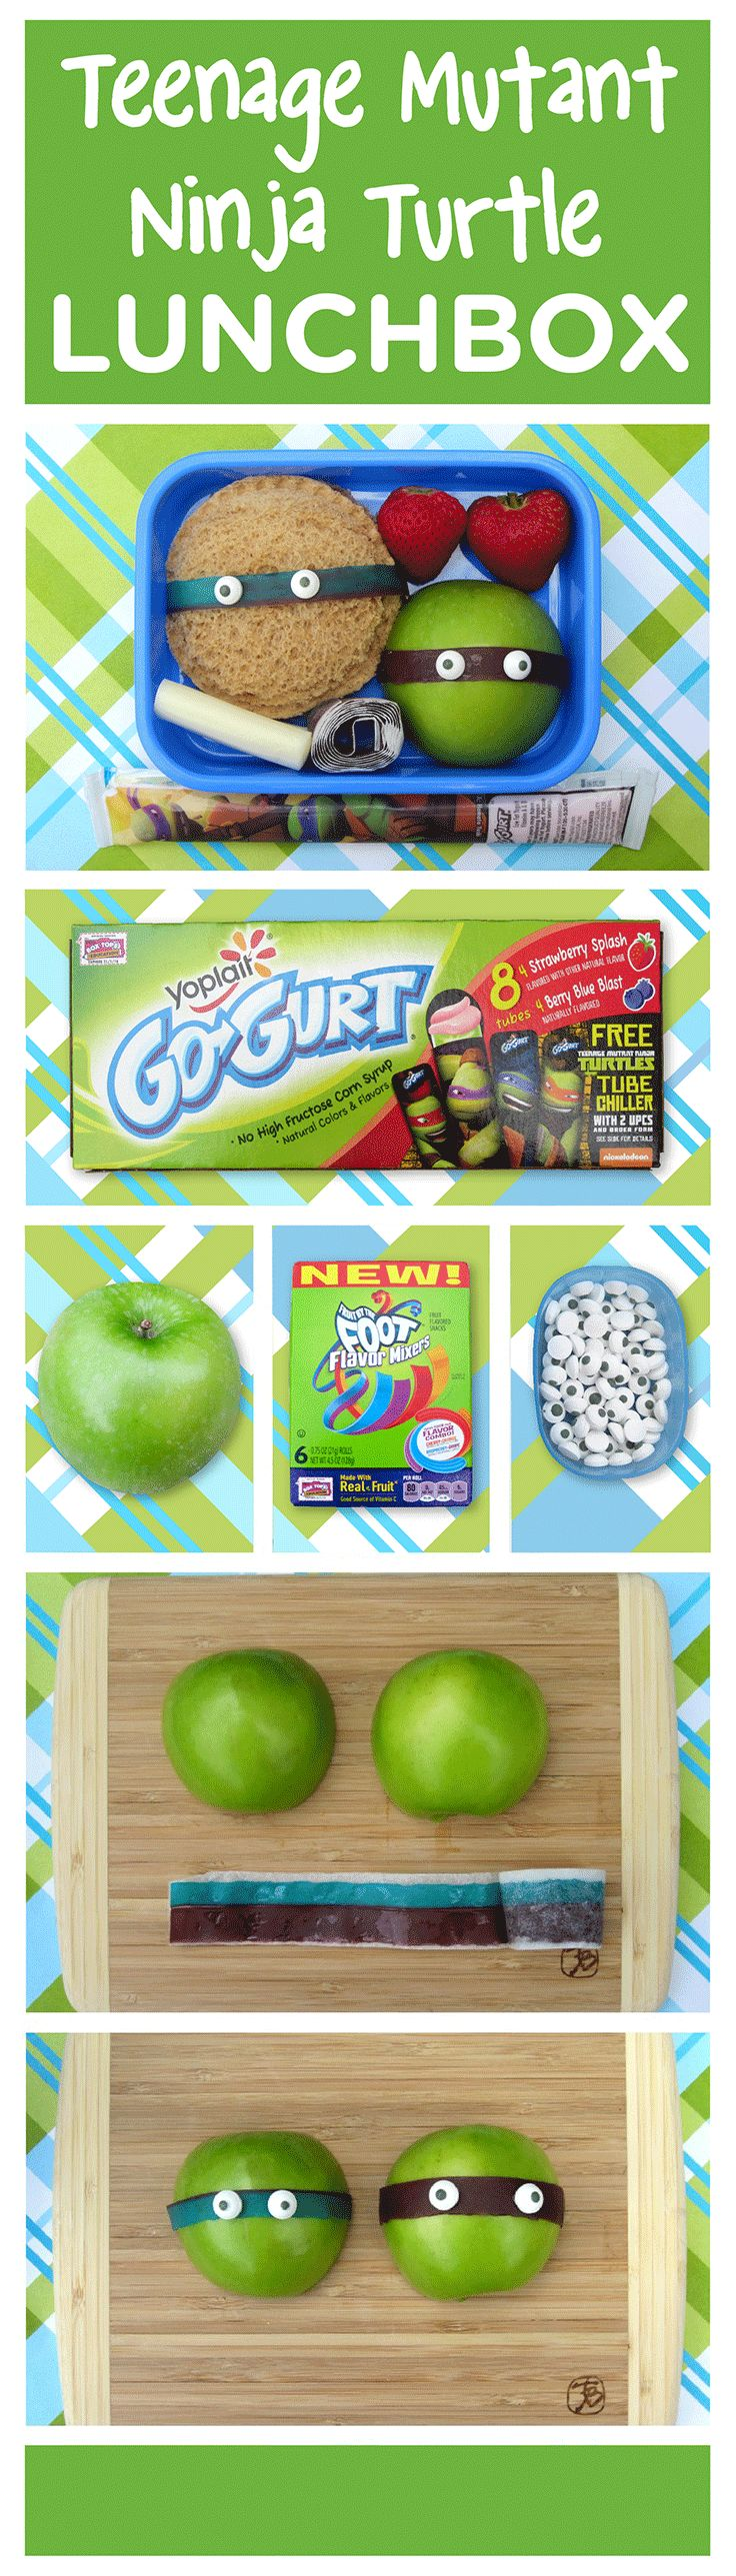 Looking for an easy lunch box idea for your Turtle fan? Shannon Carino of BentoLunch.net partnered with Go-GURT® to create this easy, fun lunch for back to school fun! To re-create, slice a green apple in half, and use a strip from a Fruit by the Foot Flavor Mixer to wrap around the apple. Place two candy eyeballs on each fruit strip to make a turtle, and secure with a bit of peanut butter. Visit gogurt.com/lunchbox for more ideas!